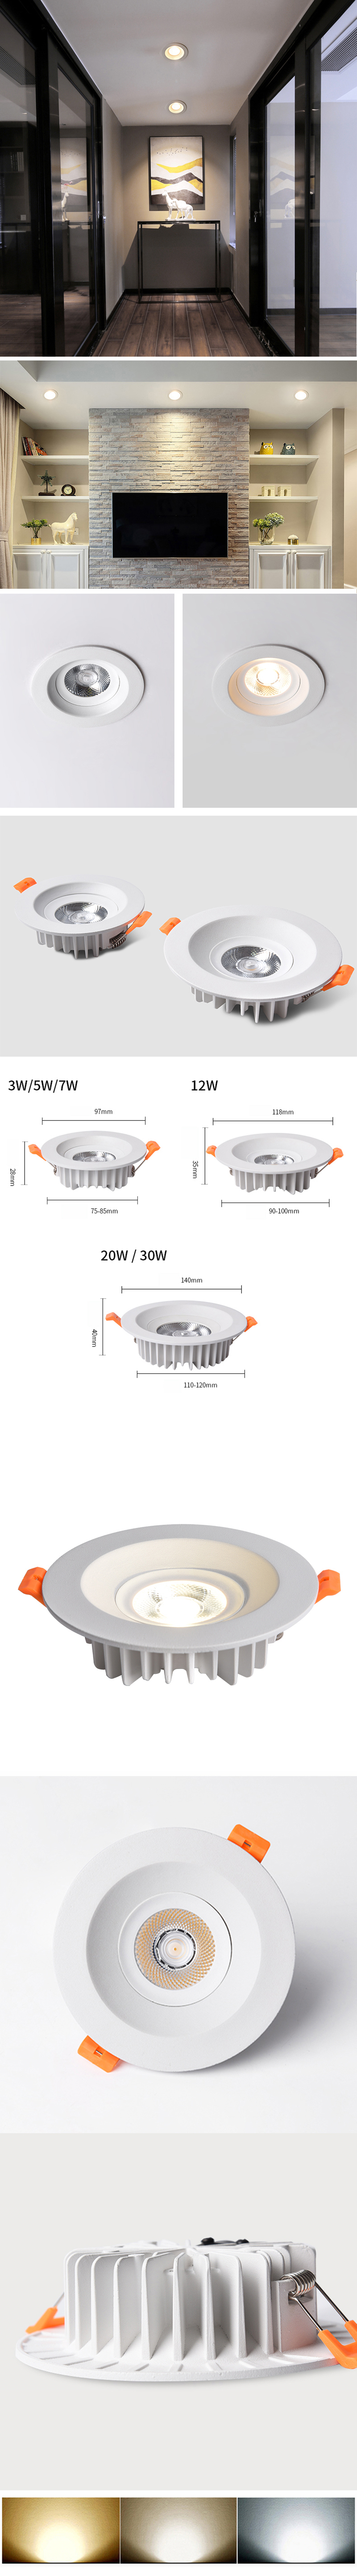 Round Adjustable Fire Rated Ceiling Dimmabl Black Recessed Ip65 Housing Led Cob Downlight